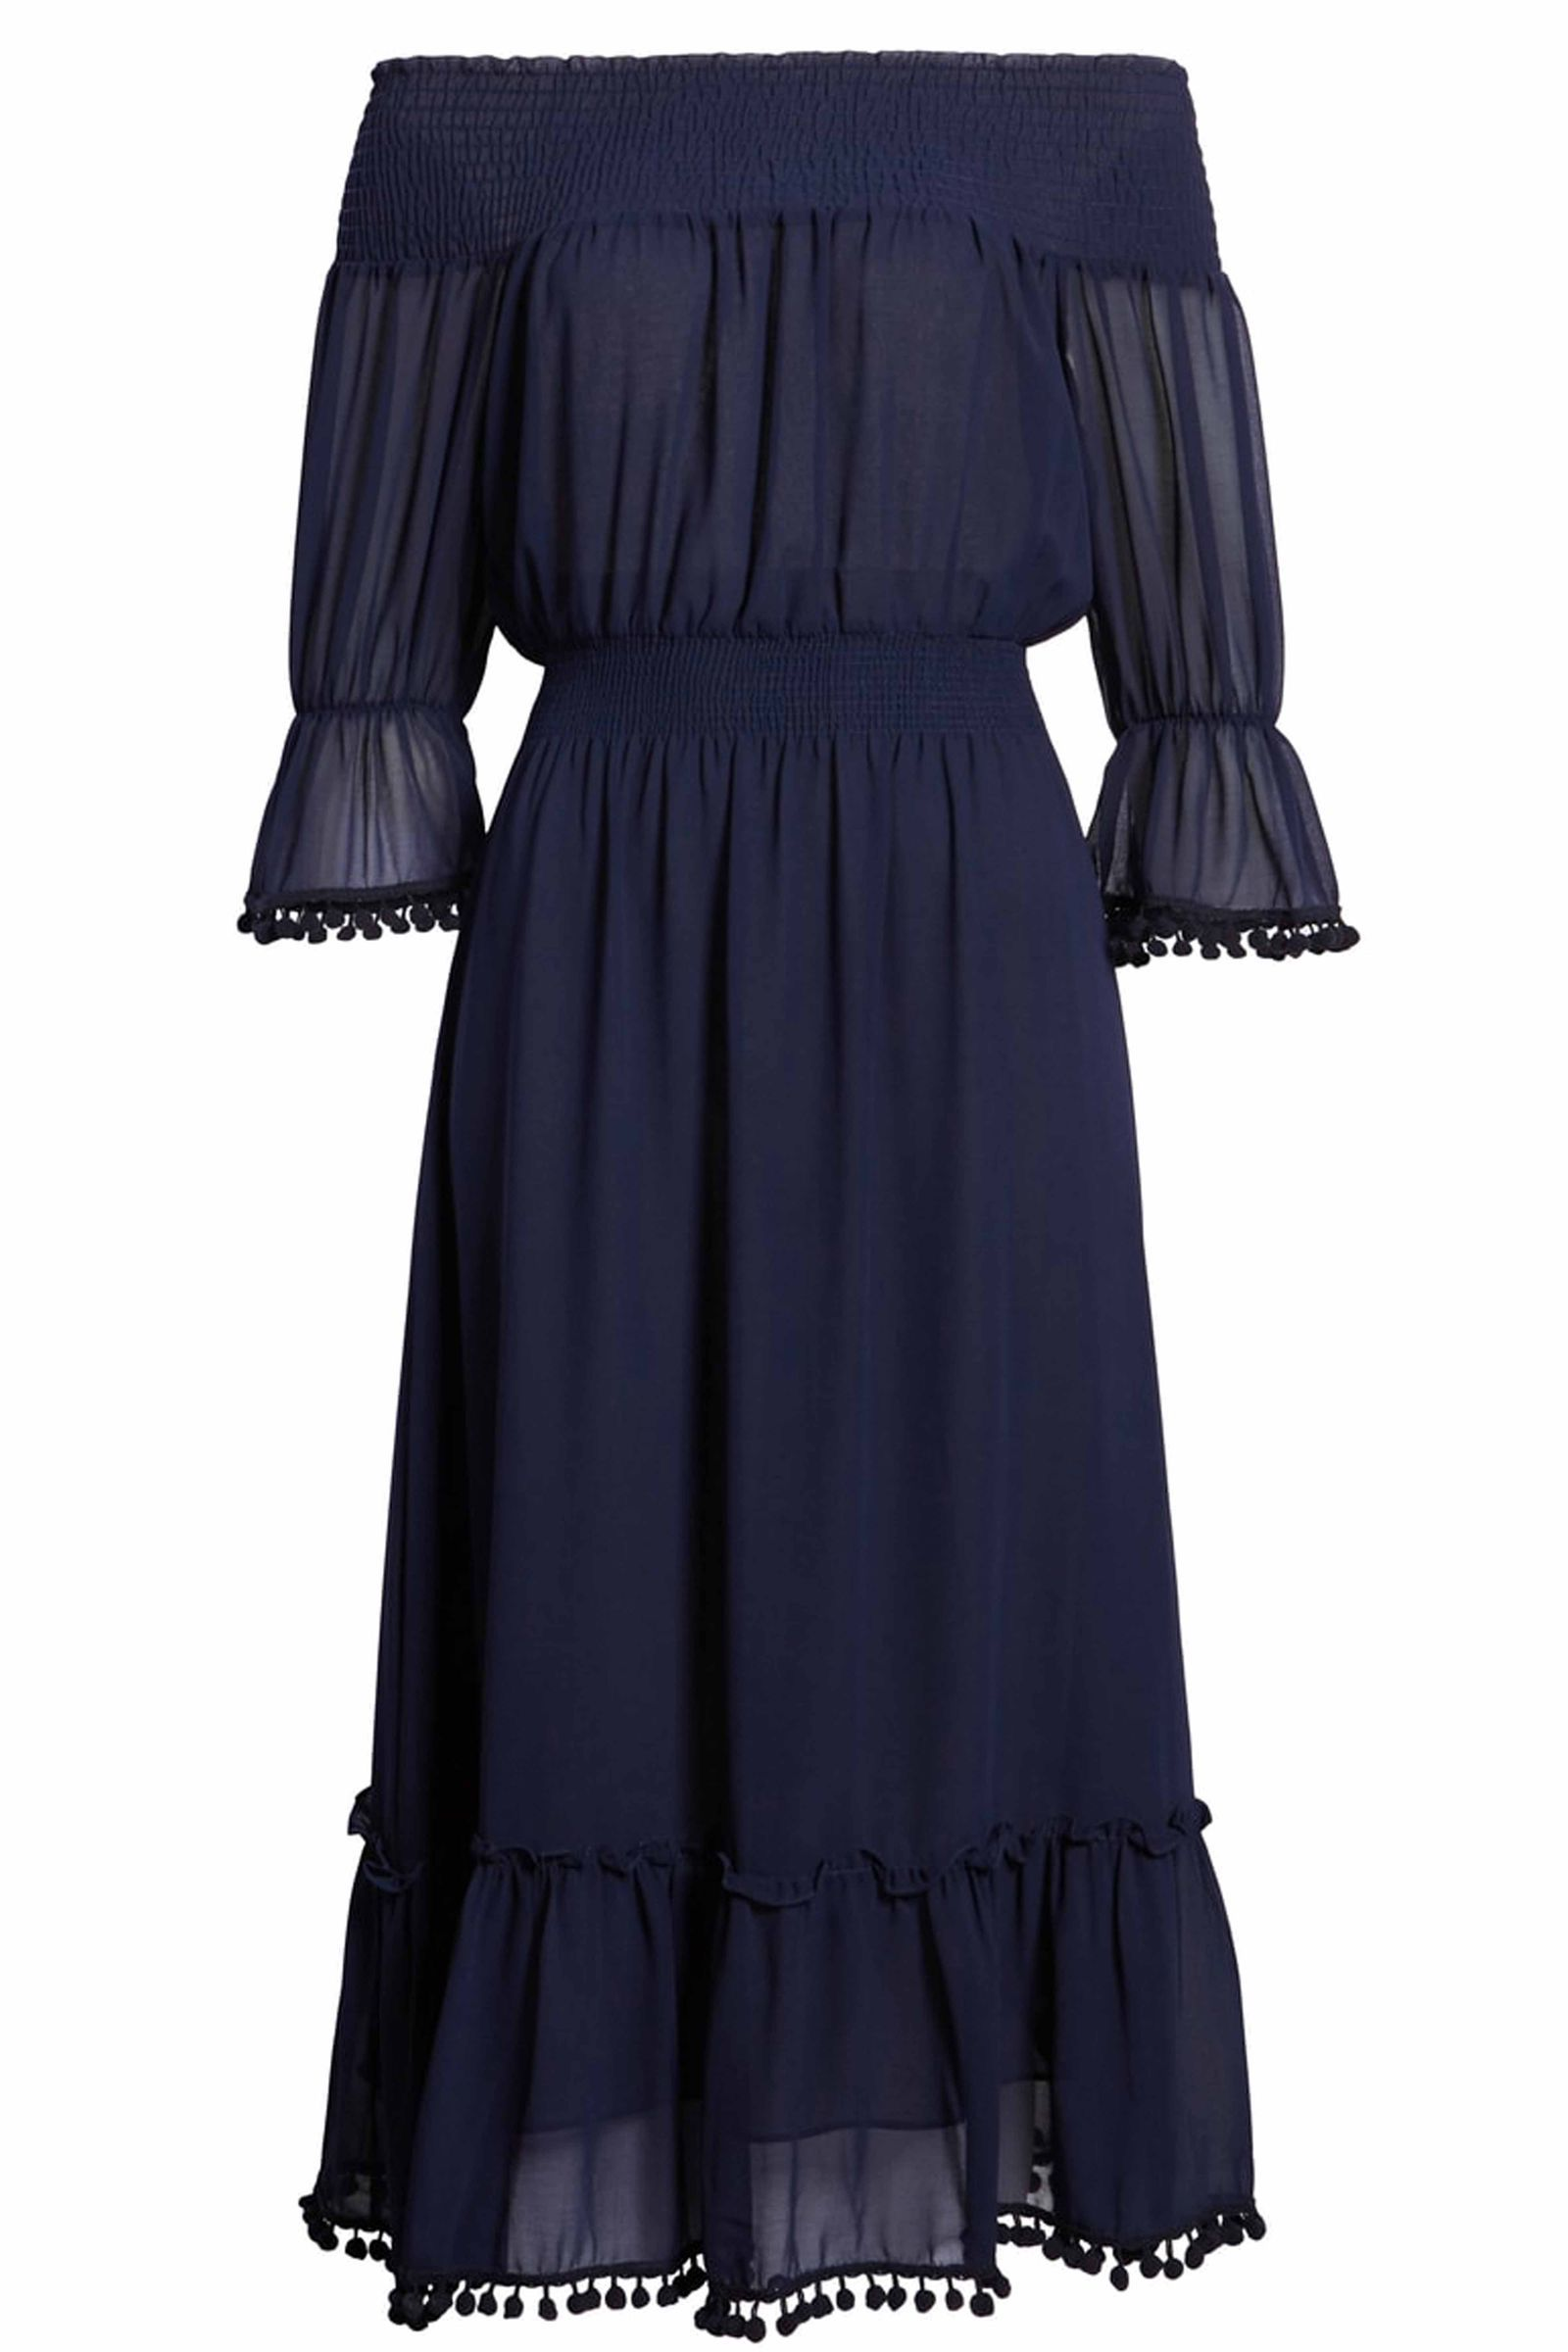 Dresses to wear to a fall wedding for a guest   Dresses to Wear to a Fall Wedding  Looks  Pinterest  Dresses